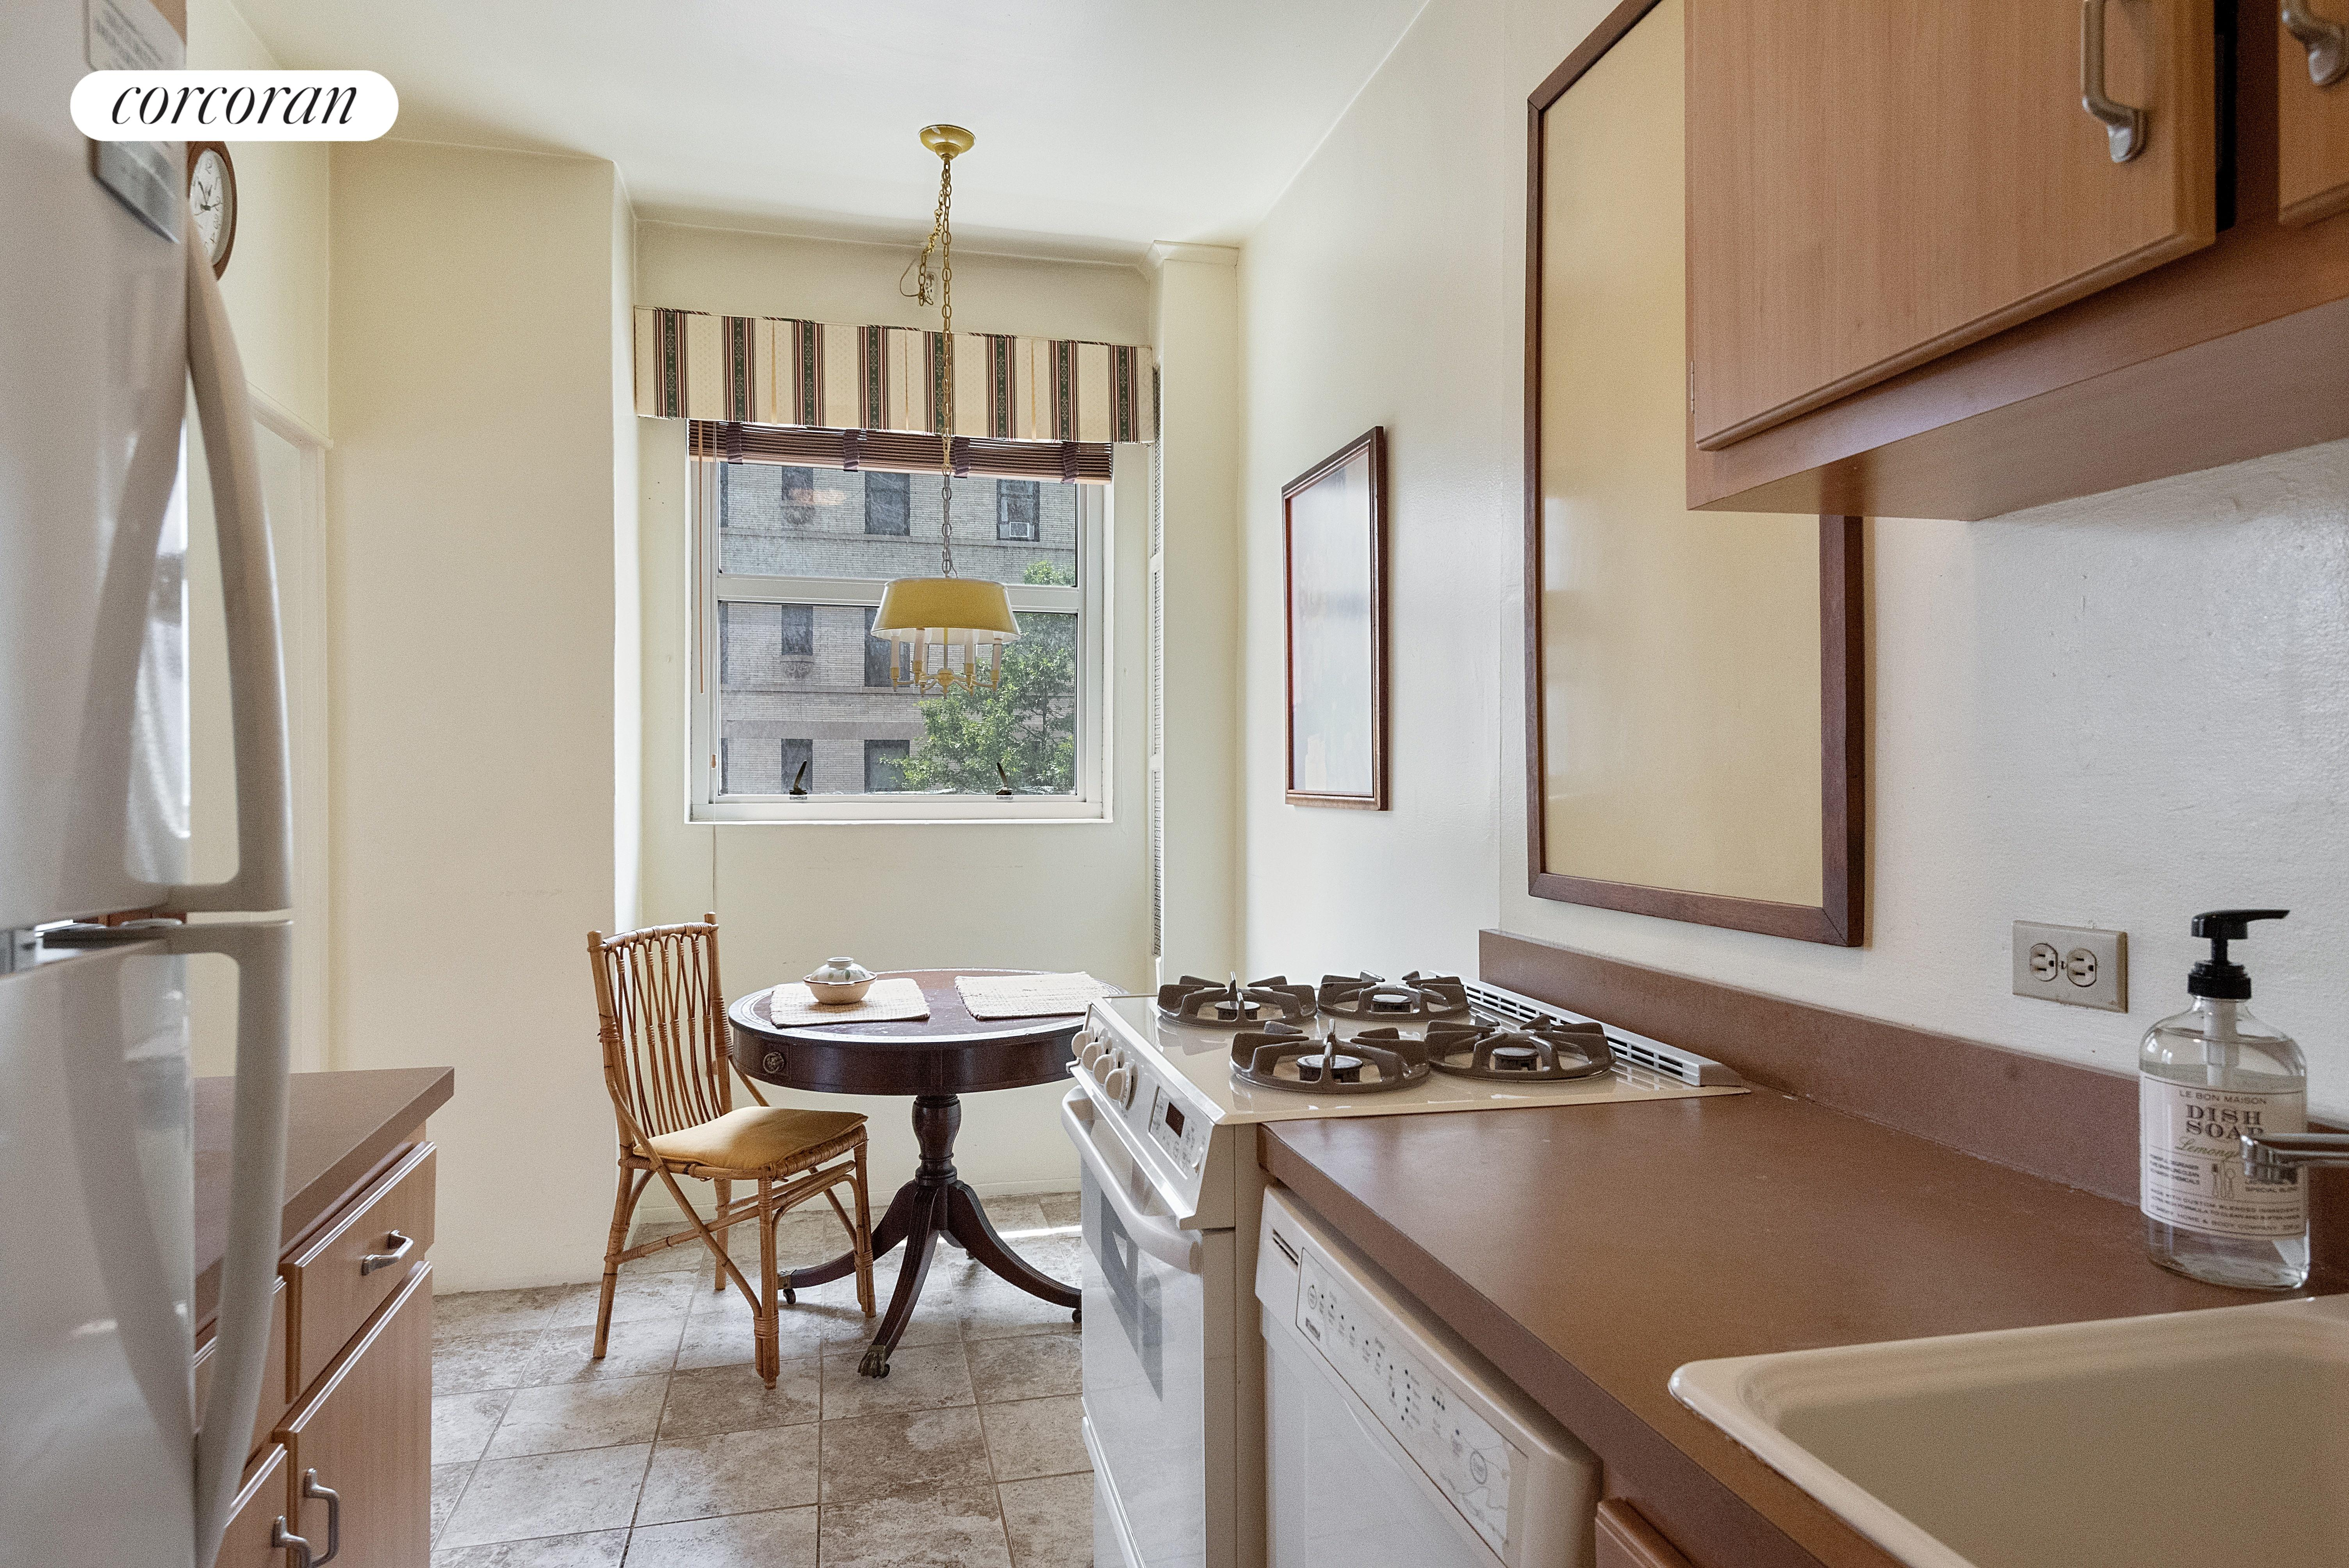 501 West 123rd Street, 3F, Other Listing Photo